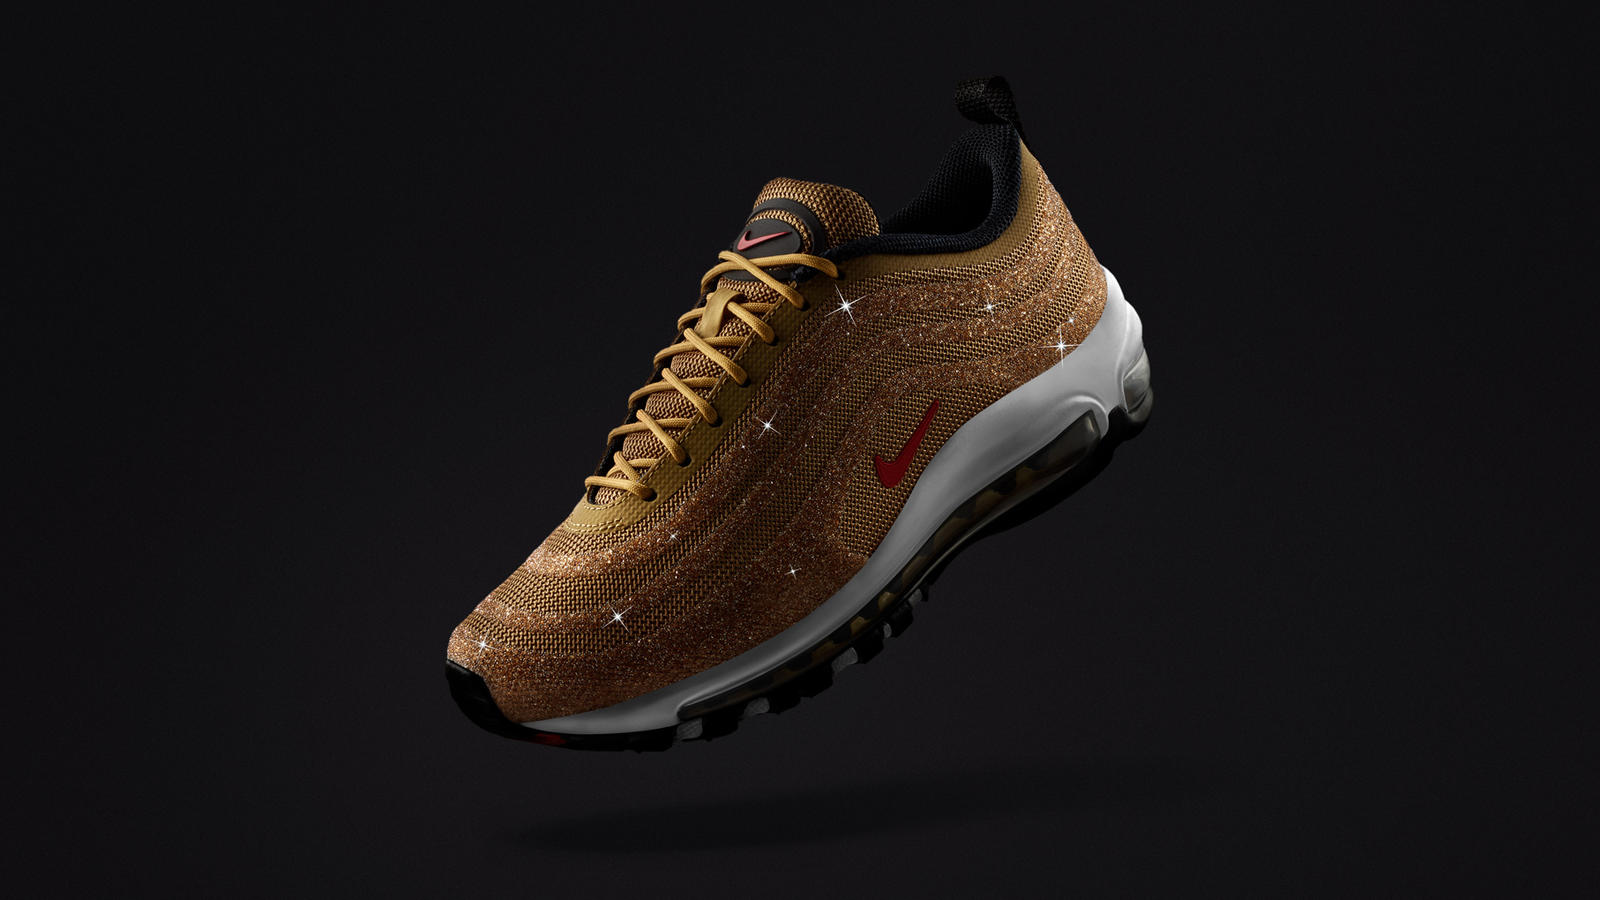 25436aedd6 Nike Air Max 97 Gold Swarovski® Crystal - Nike News